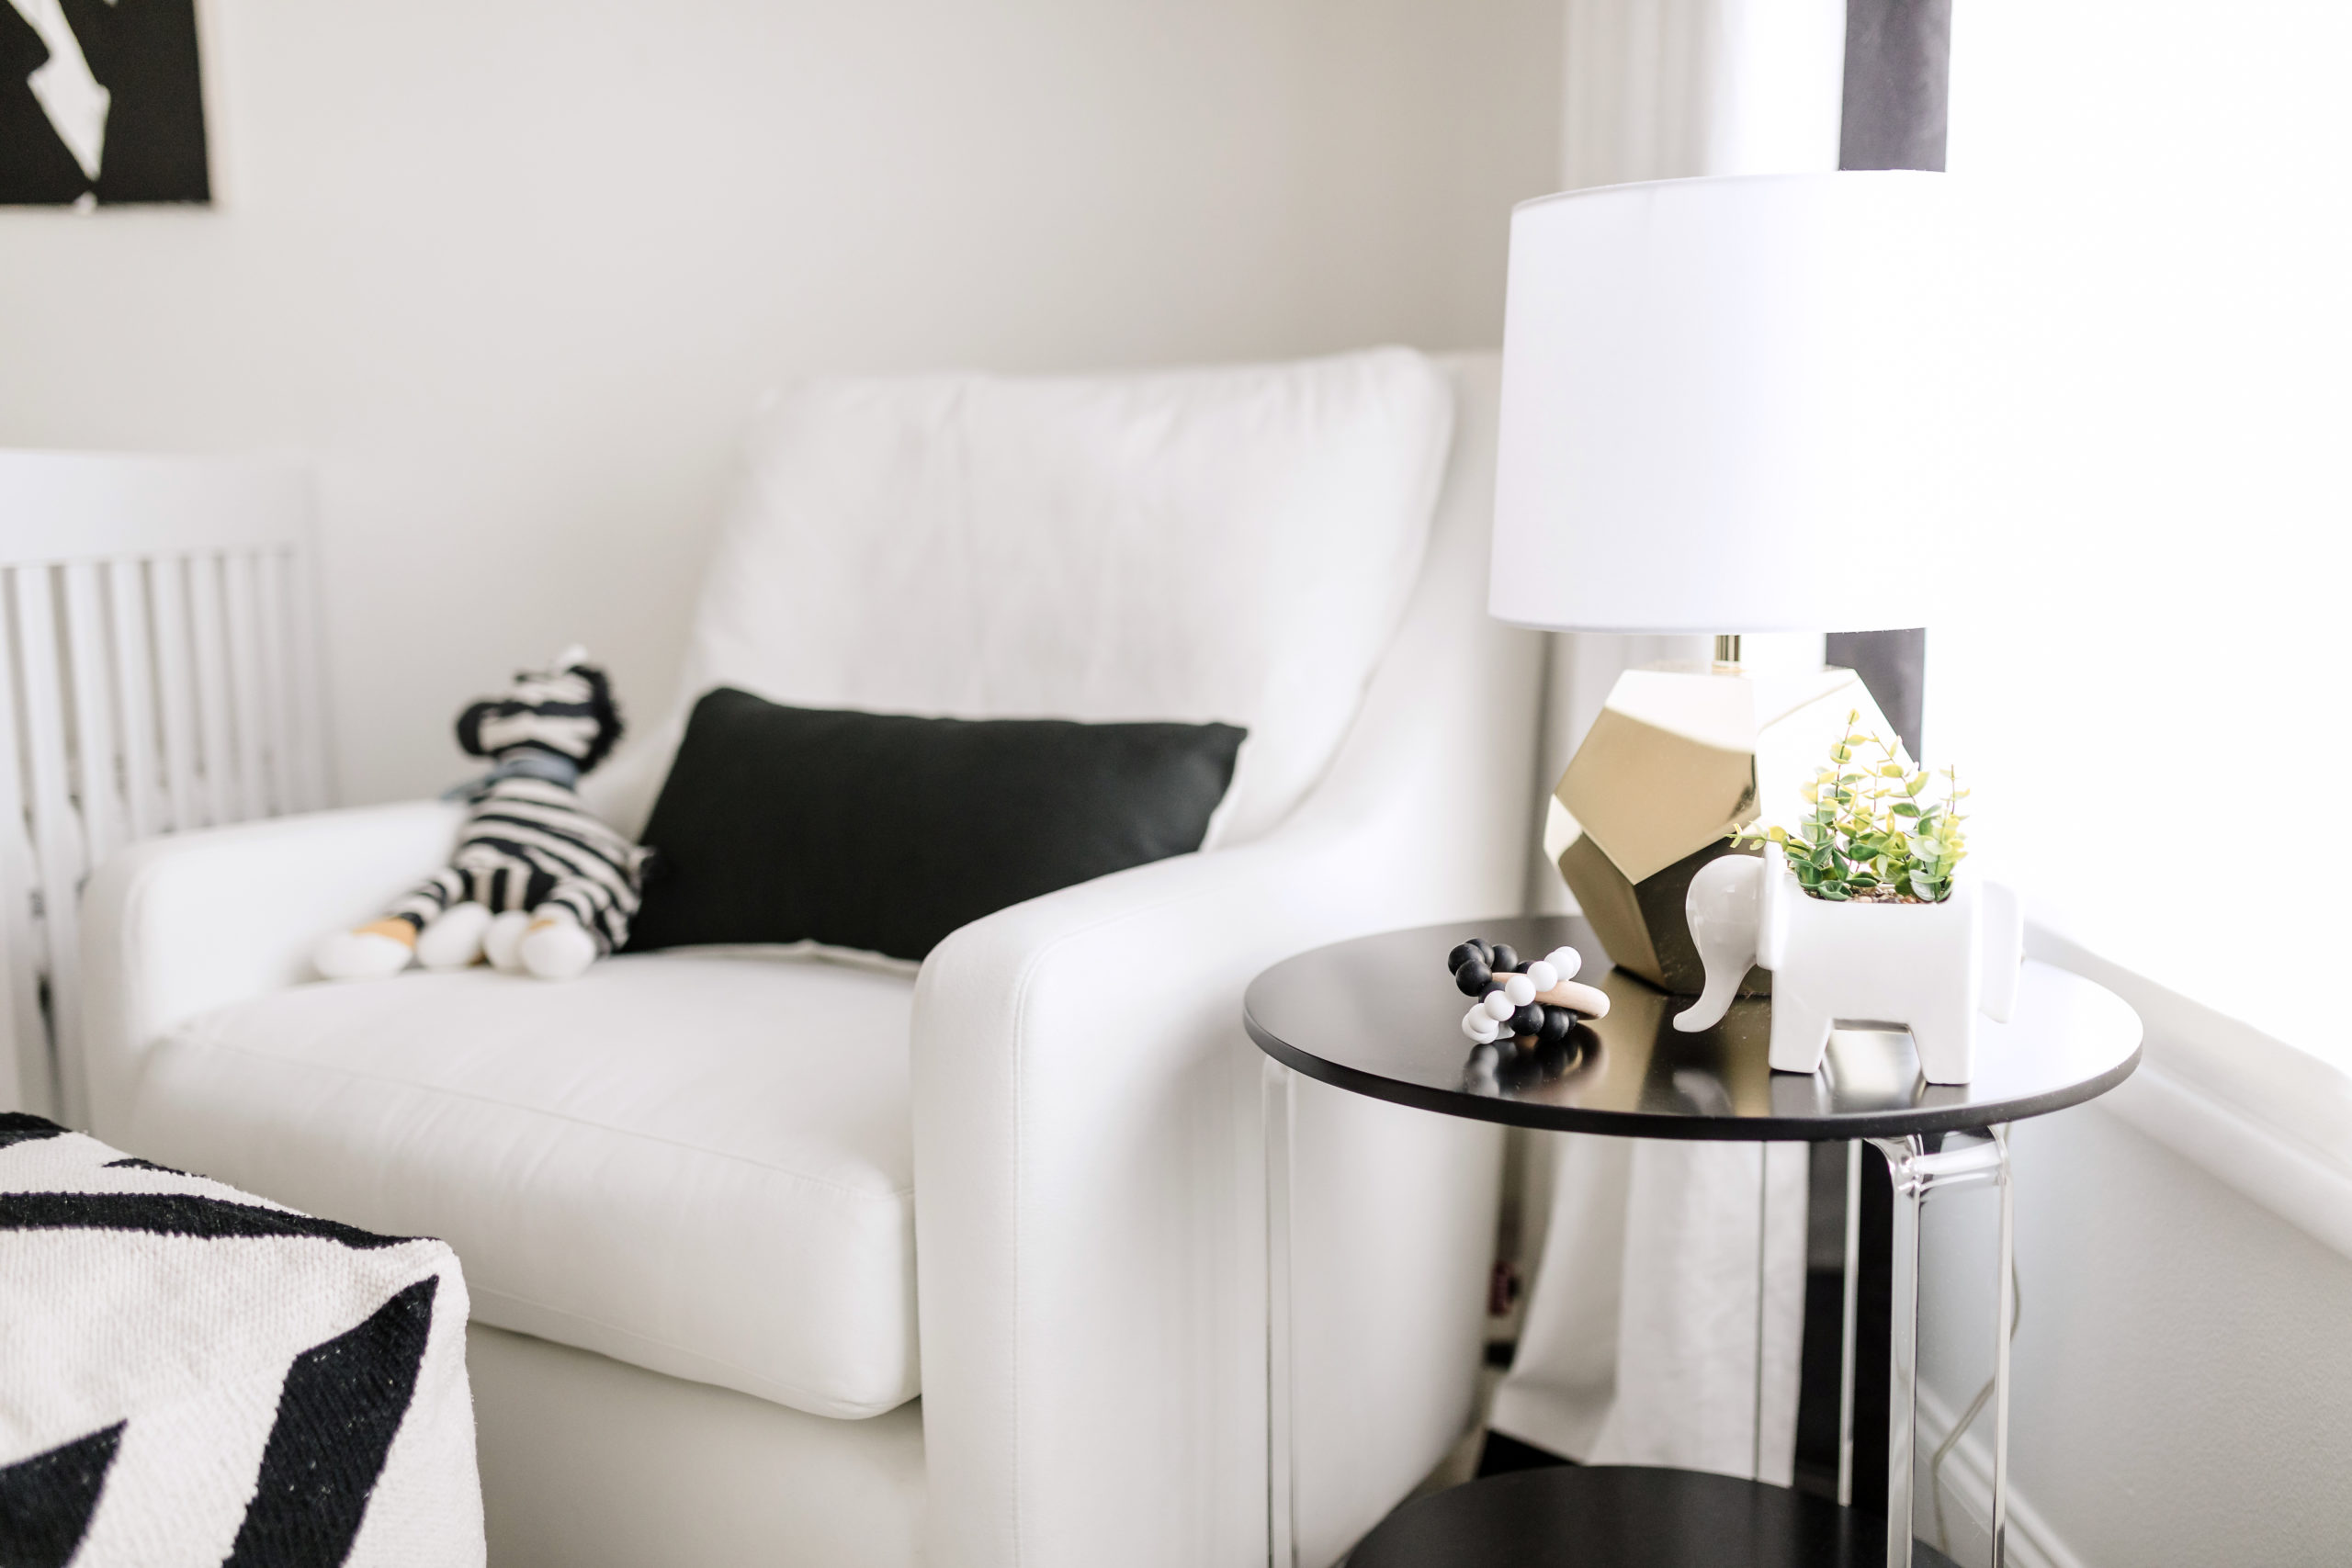 White Glider and Black Acrylic Side Table in Nursing Nook